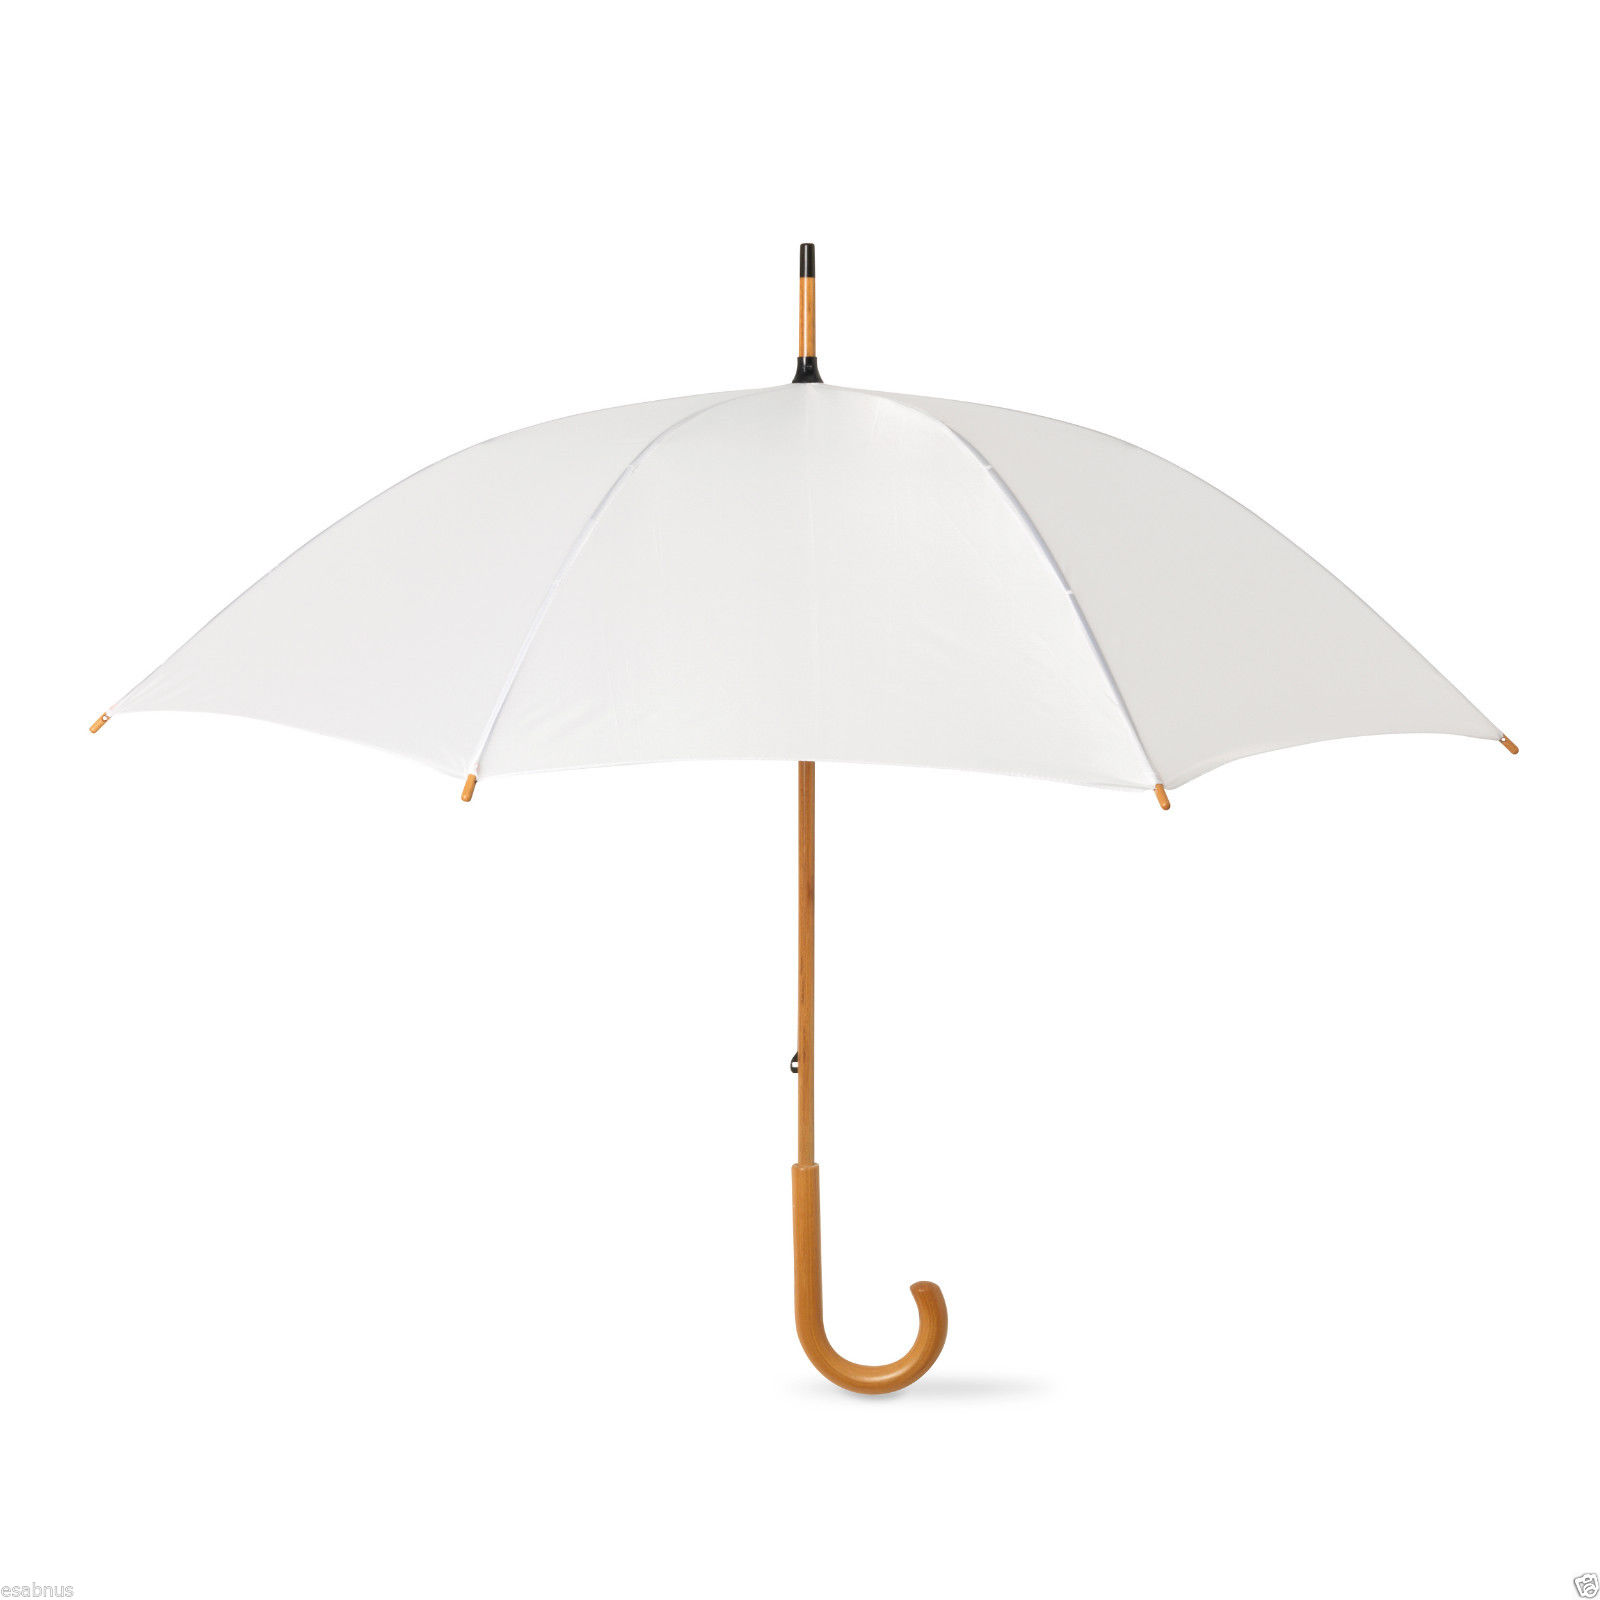 5-Wedding-Style-Umbrellas-crooked-wooden-handle-Size-90cm-long-x-106cm-Manual